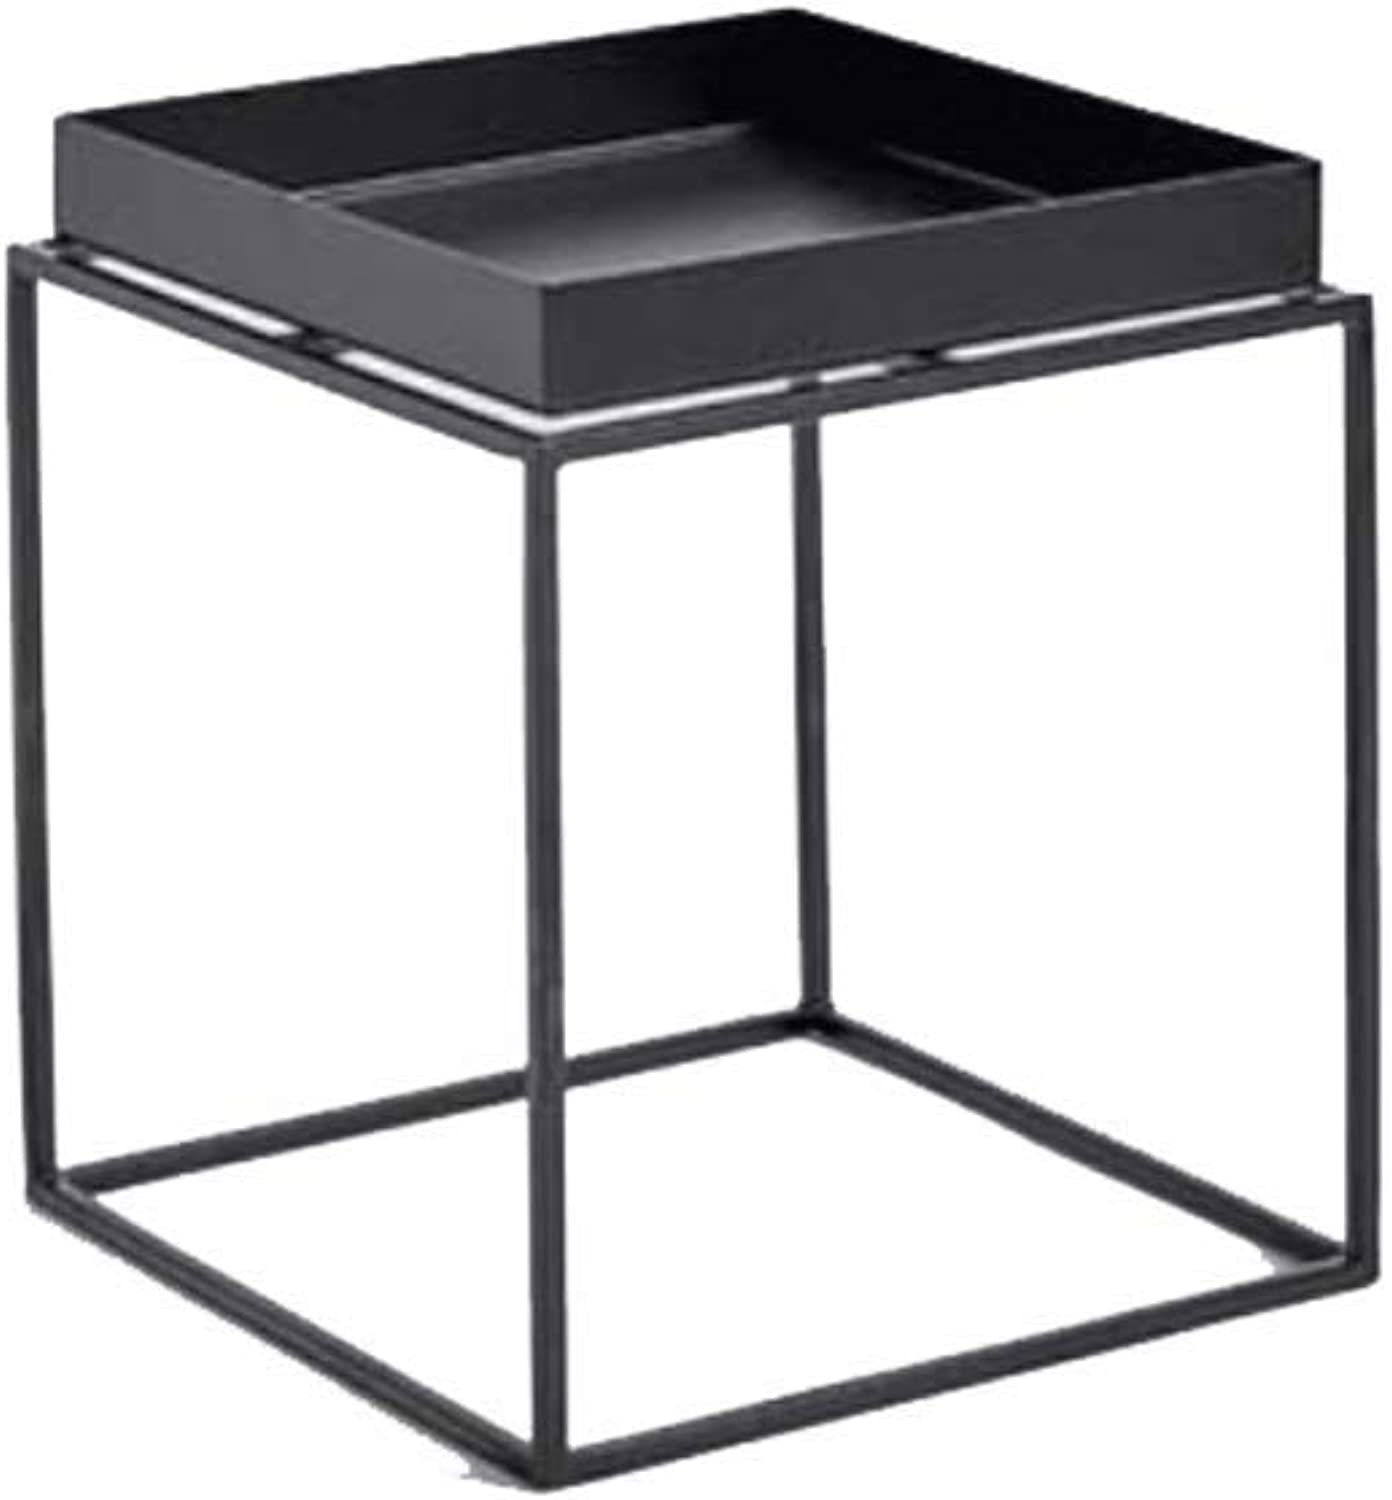 Multifunctional Coffee Table Flower Stand Living Room Sofa Side Table Shelf Bedroom Office Metal Black and White (color   Black, Size   30x30cm)